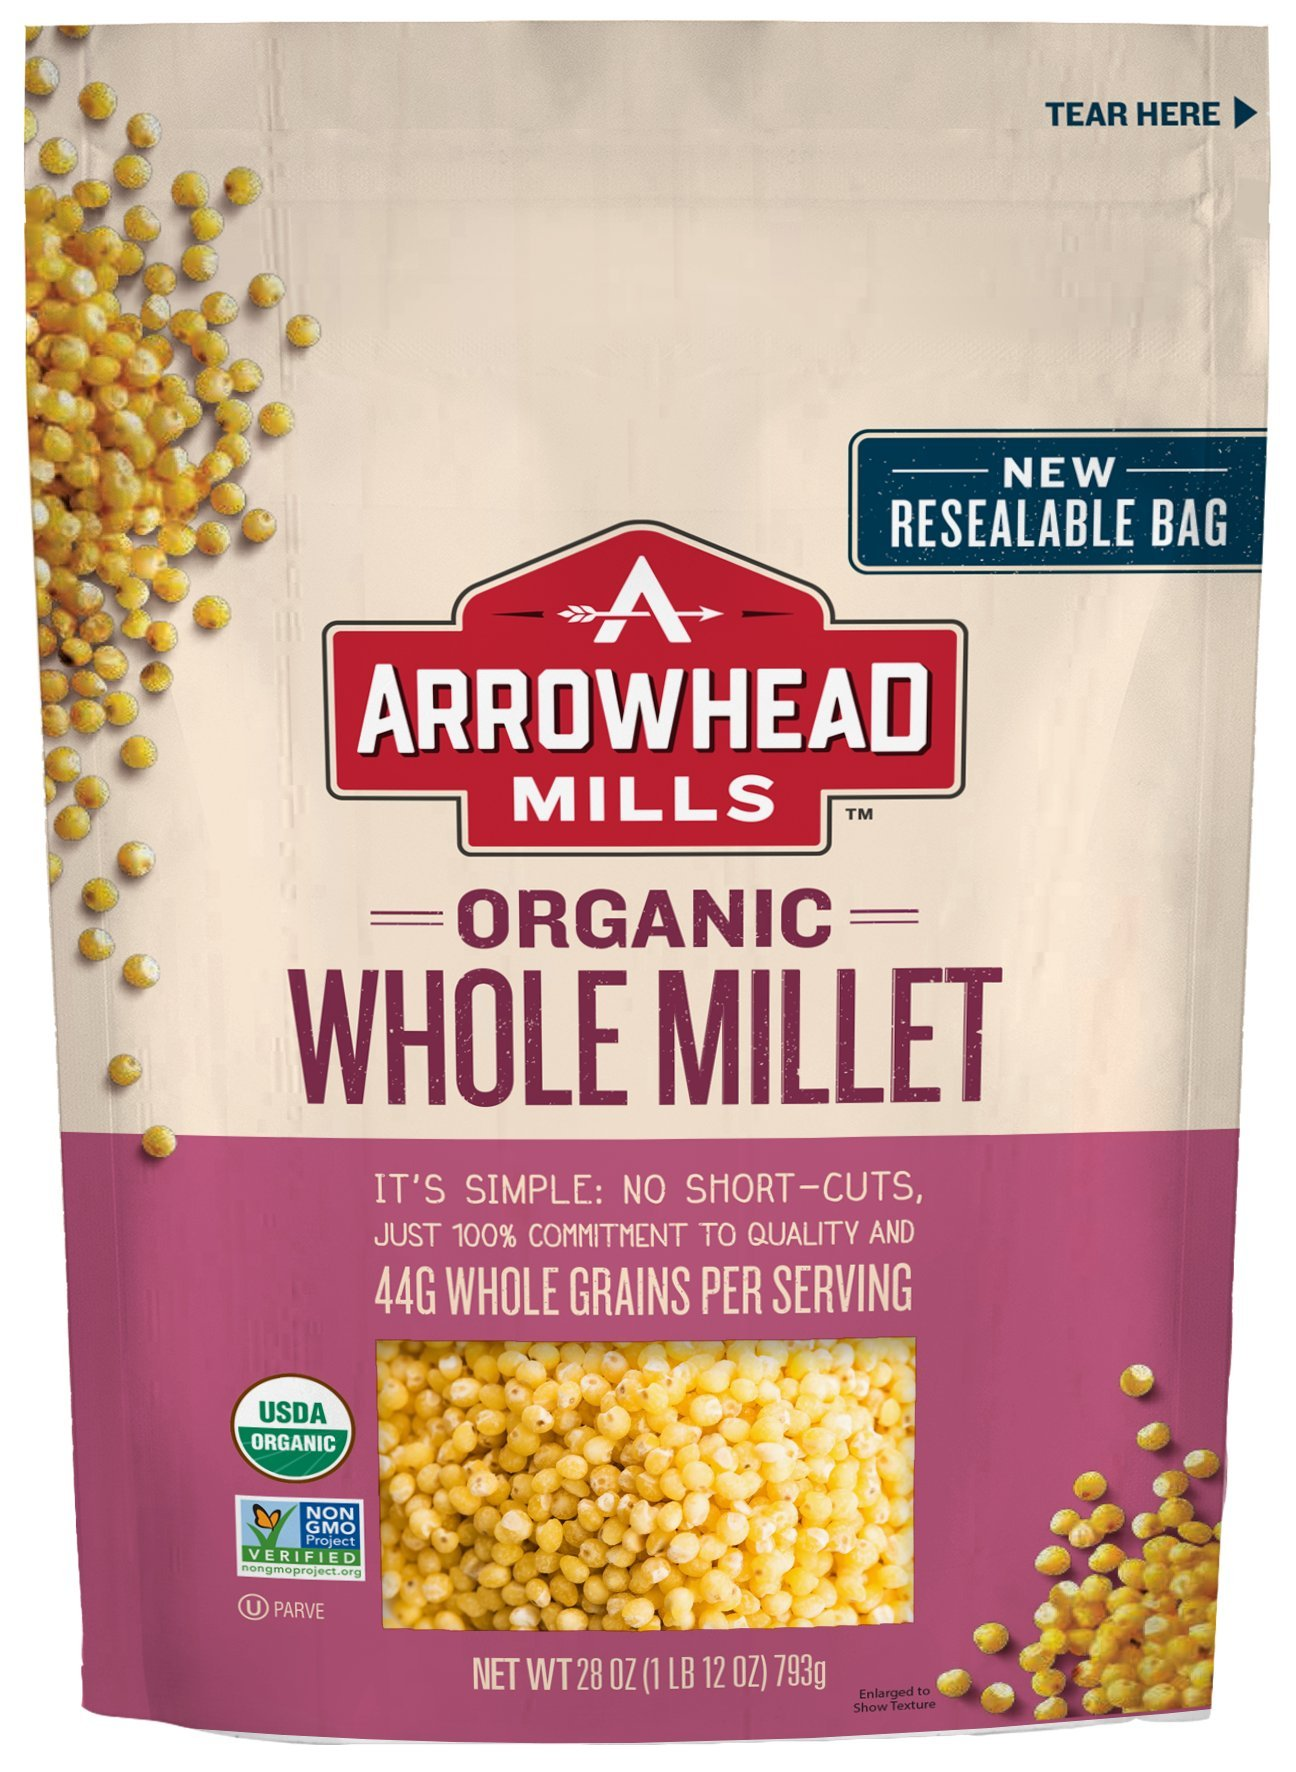 Arrowhead Mills Organic Whole Millet, 28 oz. (Pack of 6)